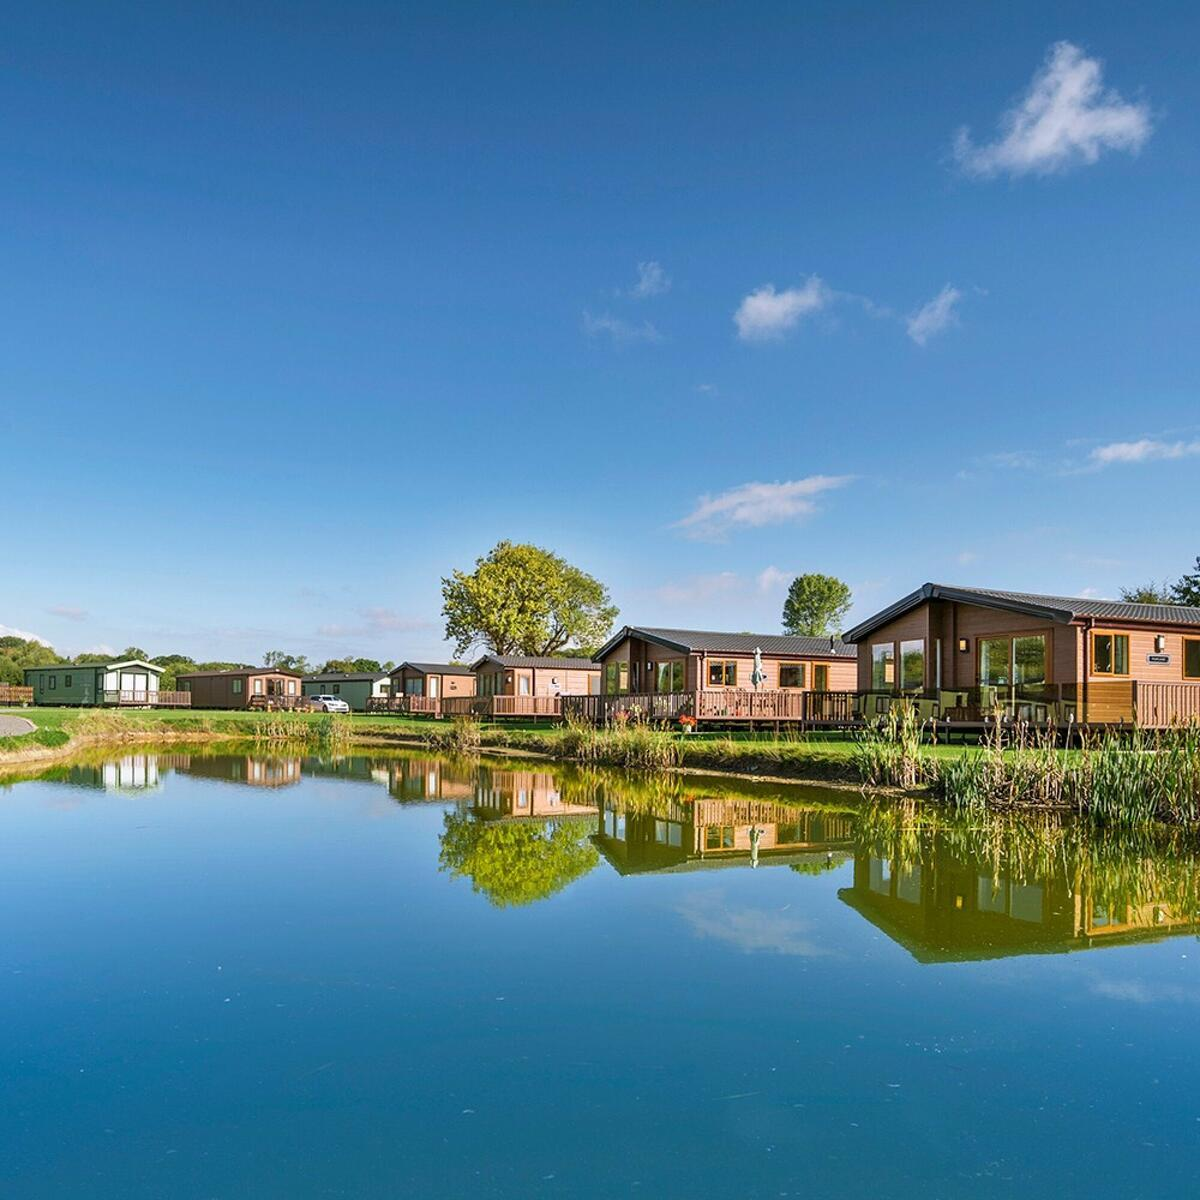 Privately owned lake edge holiday lodges at Arrow Bank